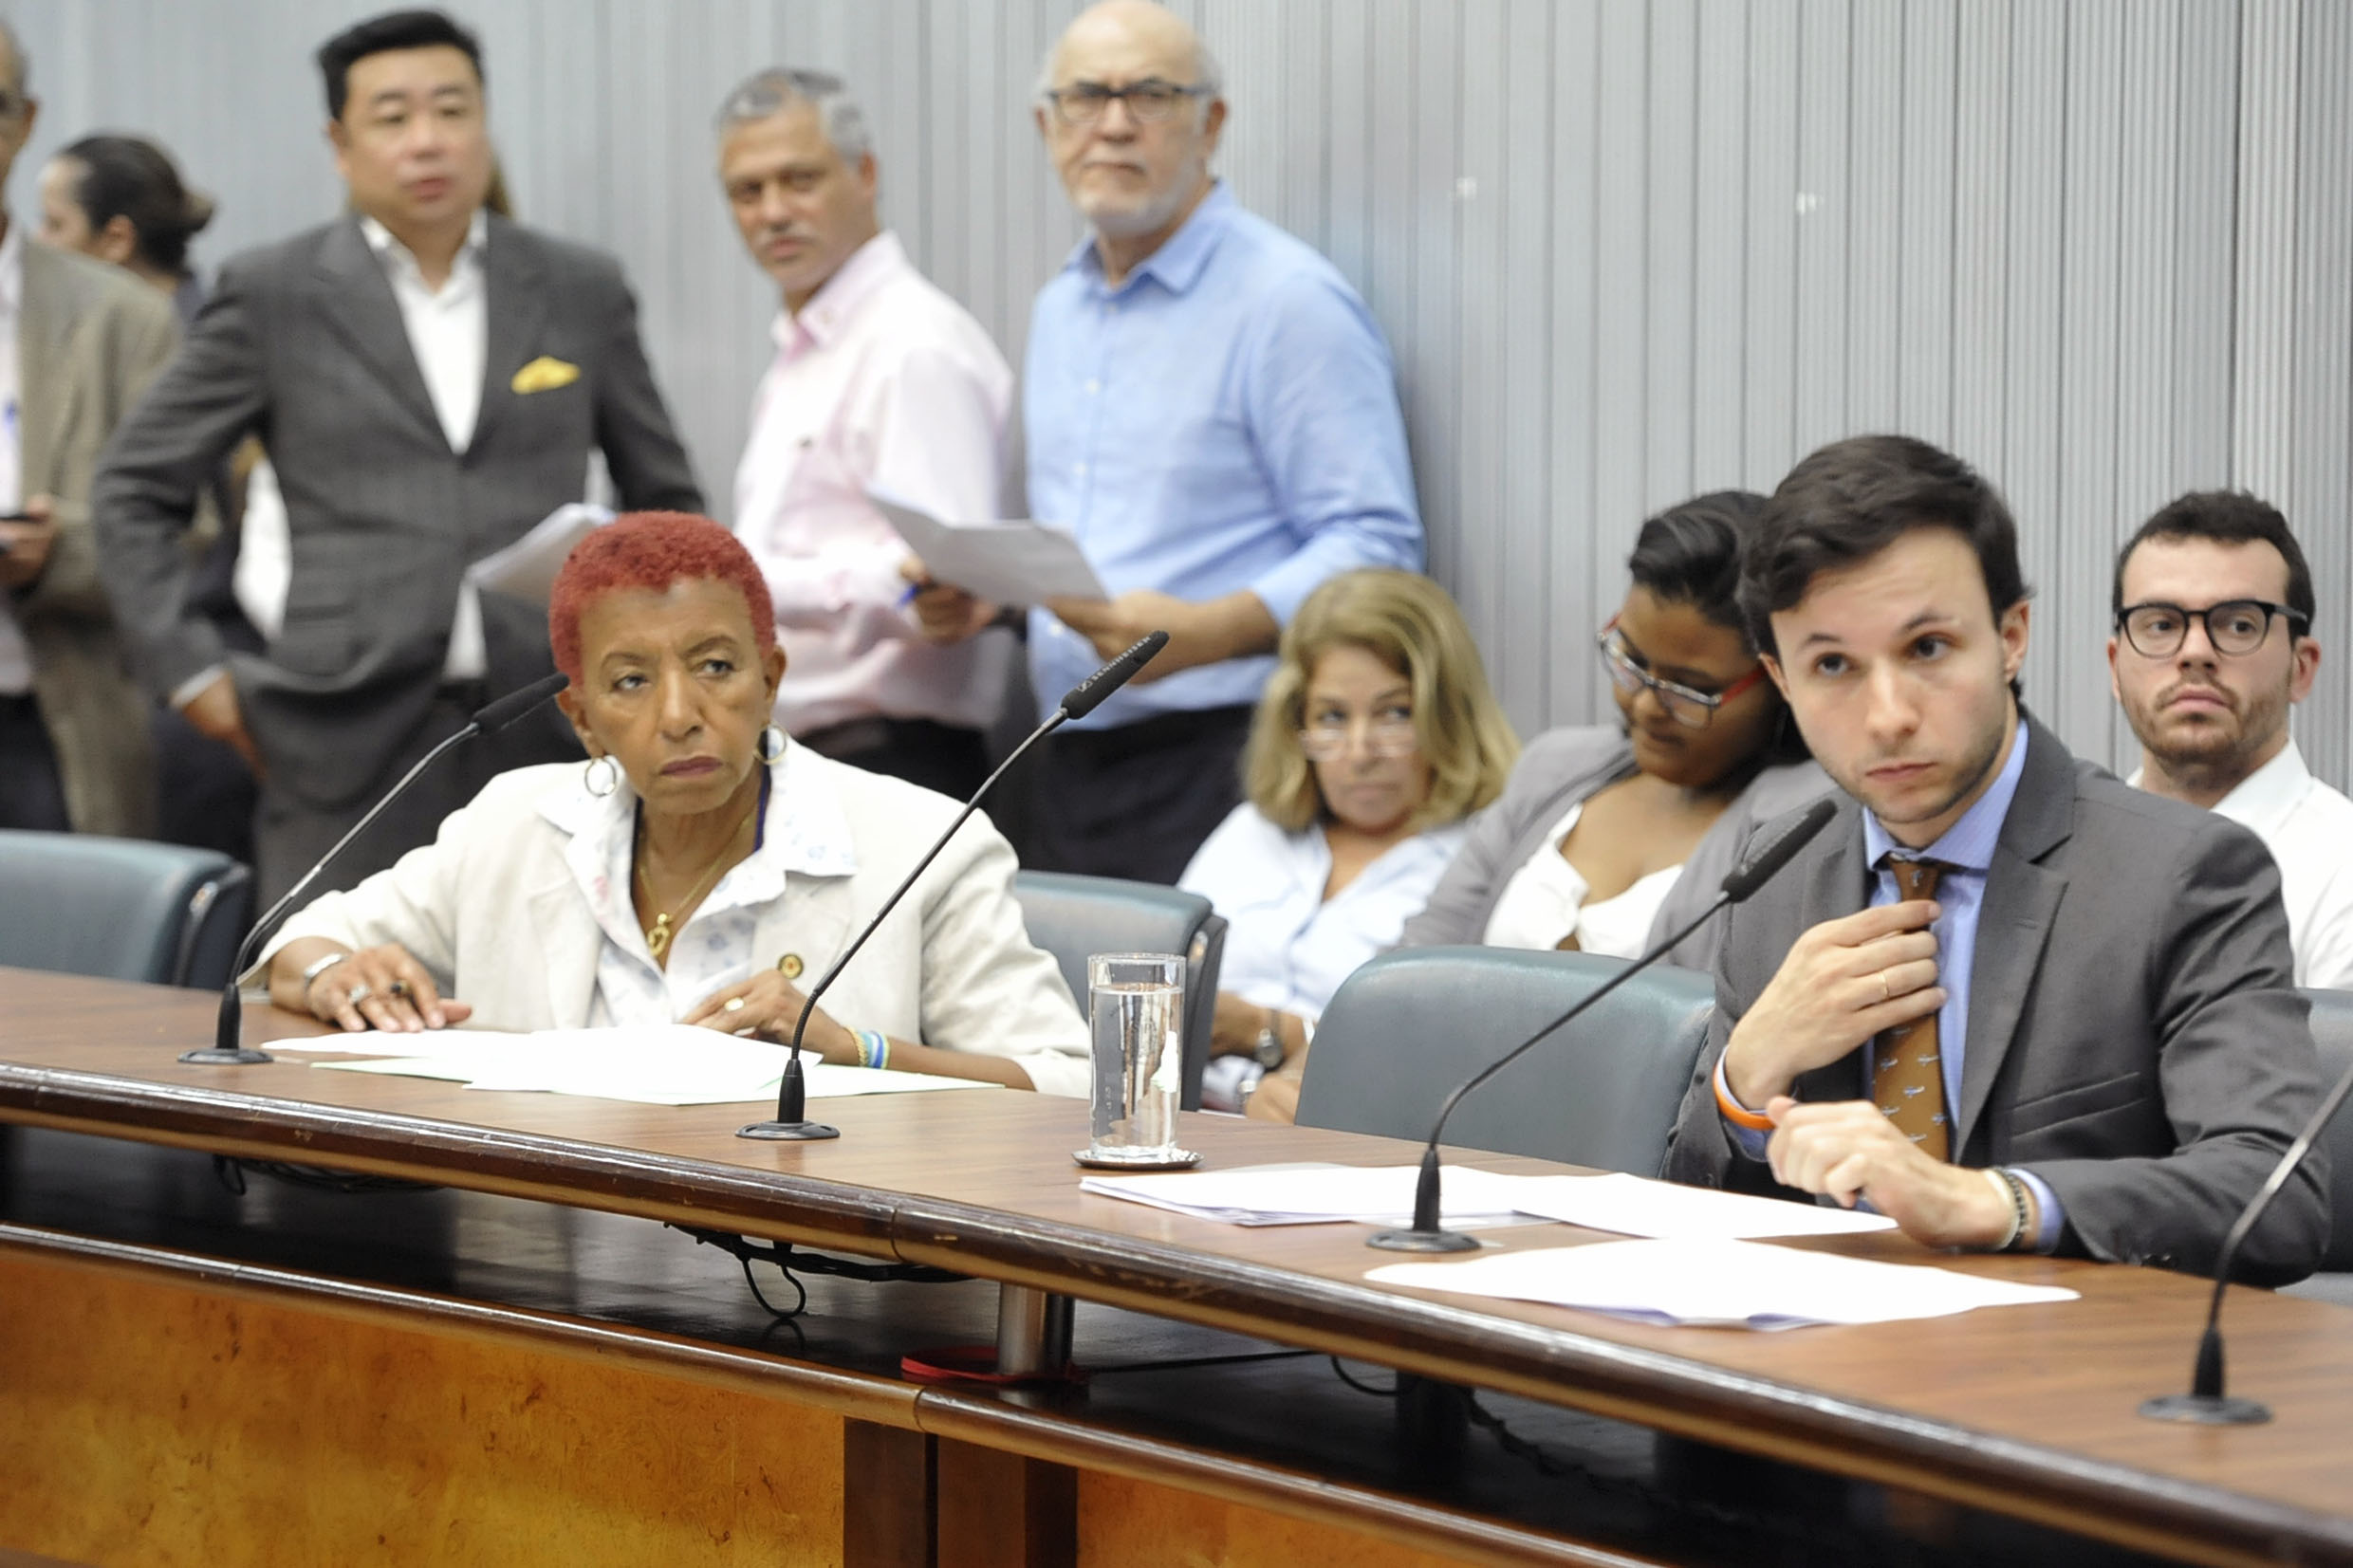 Parlamentares na comissão<a style='float:right' href='https://www3.al.sp.gov.br/repositorio/noticia/N-05-2019/fg234067.jpg' target=_blank><img src='/_img/material-file-download-white.png' width='14px' alt='Clique para baixar a imagem'></a>